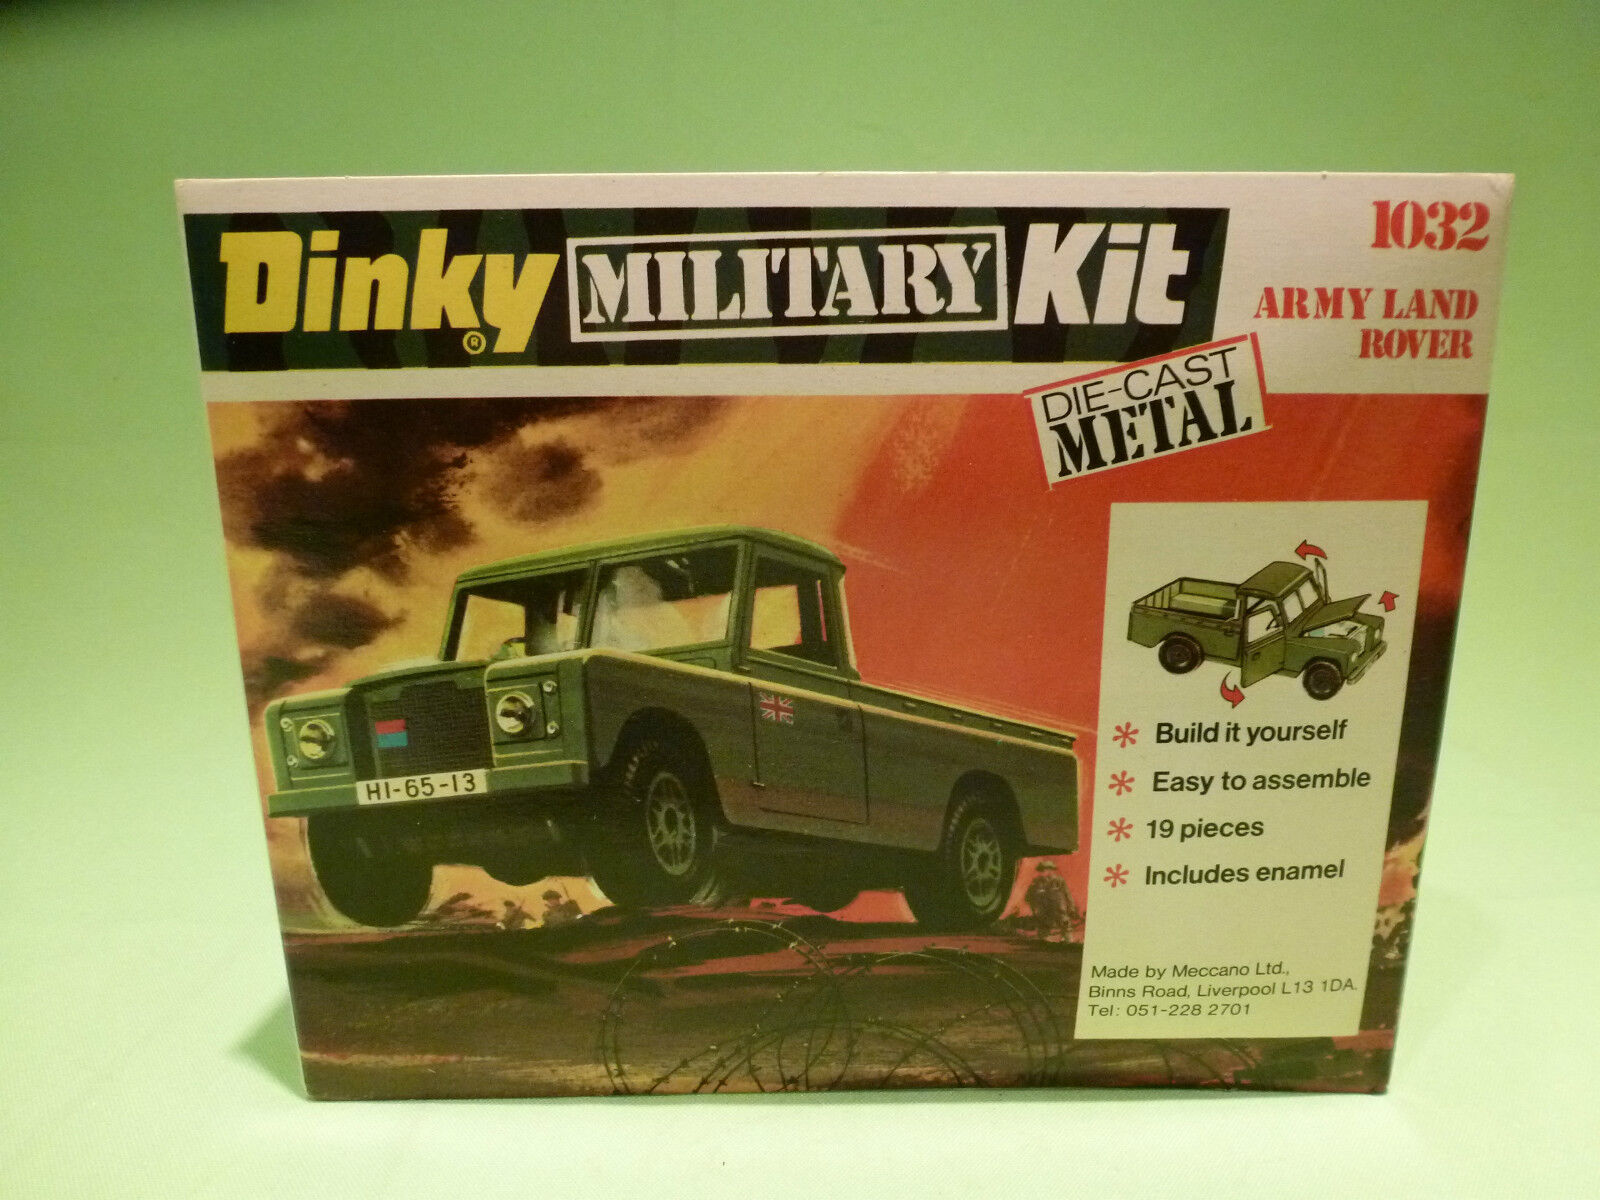 DINKY TOYS ACTION KIT  1 43  MILITARY  1032  LAND ROVER  -  MINT IN BLISTER  BOX